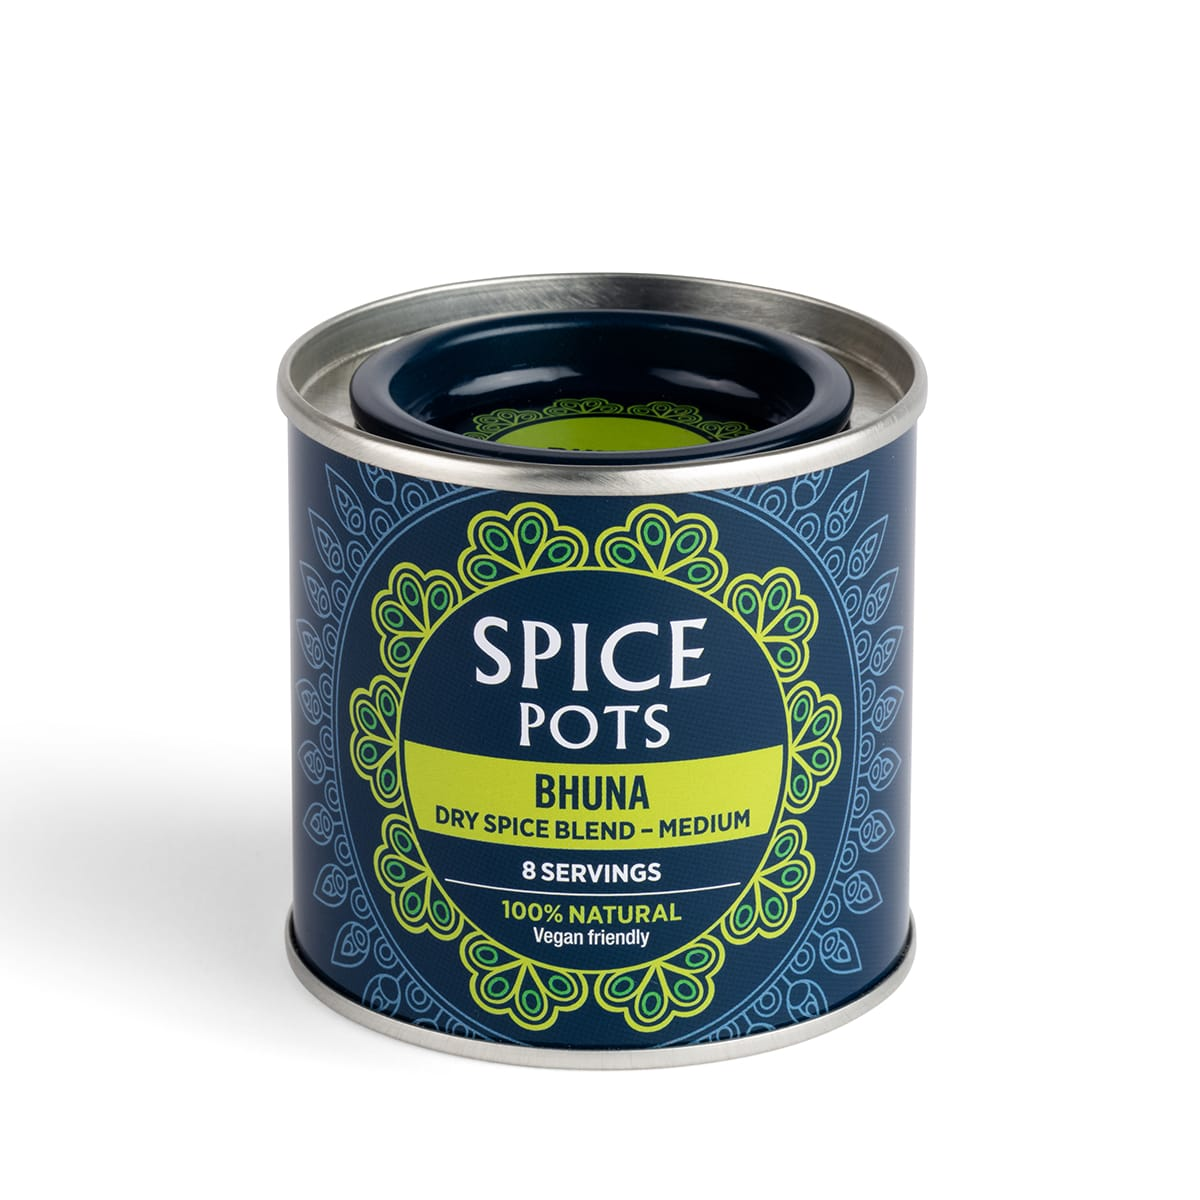 Spice Pots - Bhuna Curry Powder, medium in heat, balance of flavour and spice, no hassle and no fuss, 0 SmartPoints values, gluten free, suitable for vegans